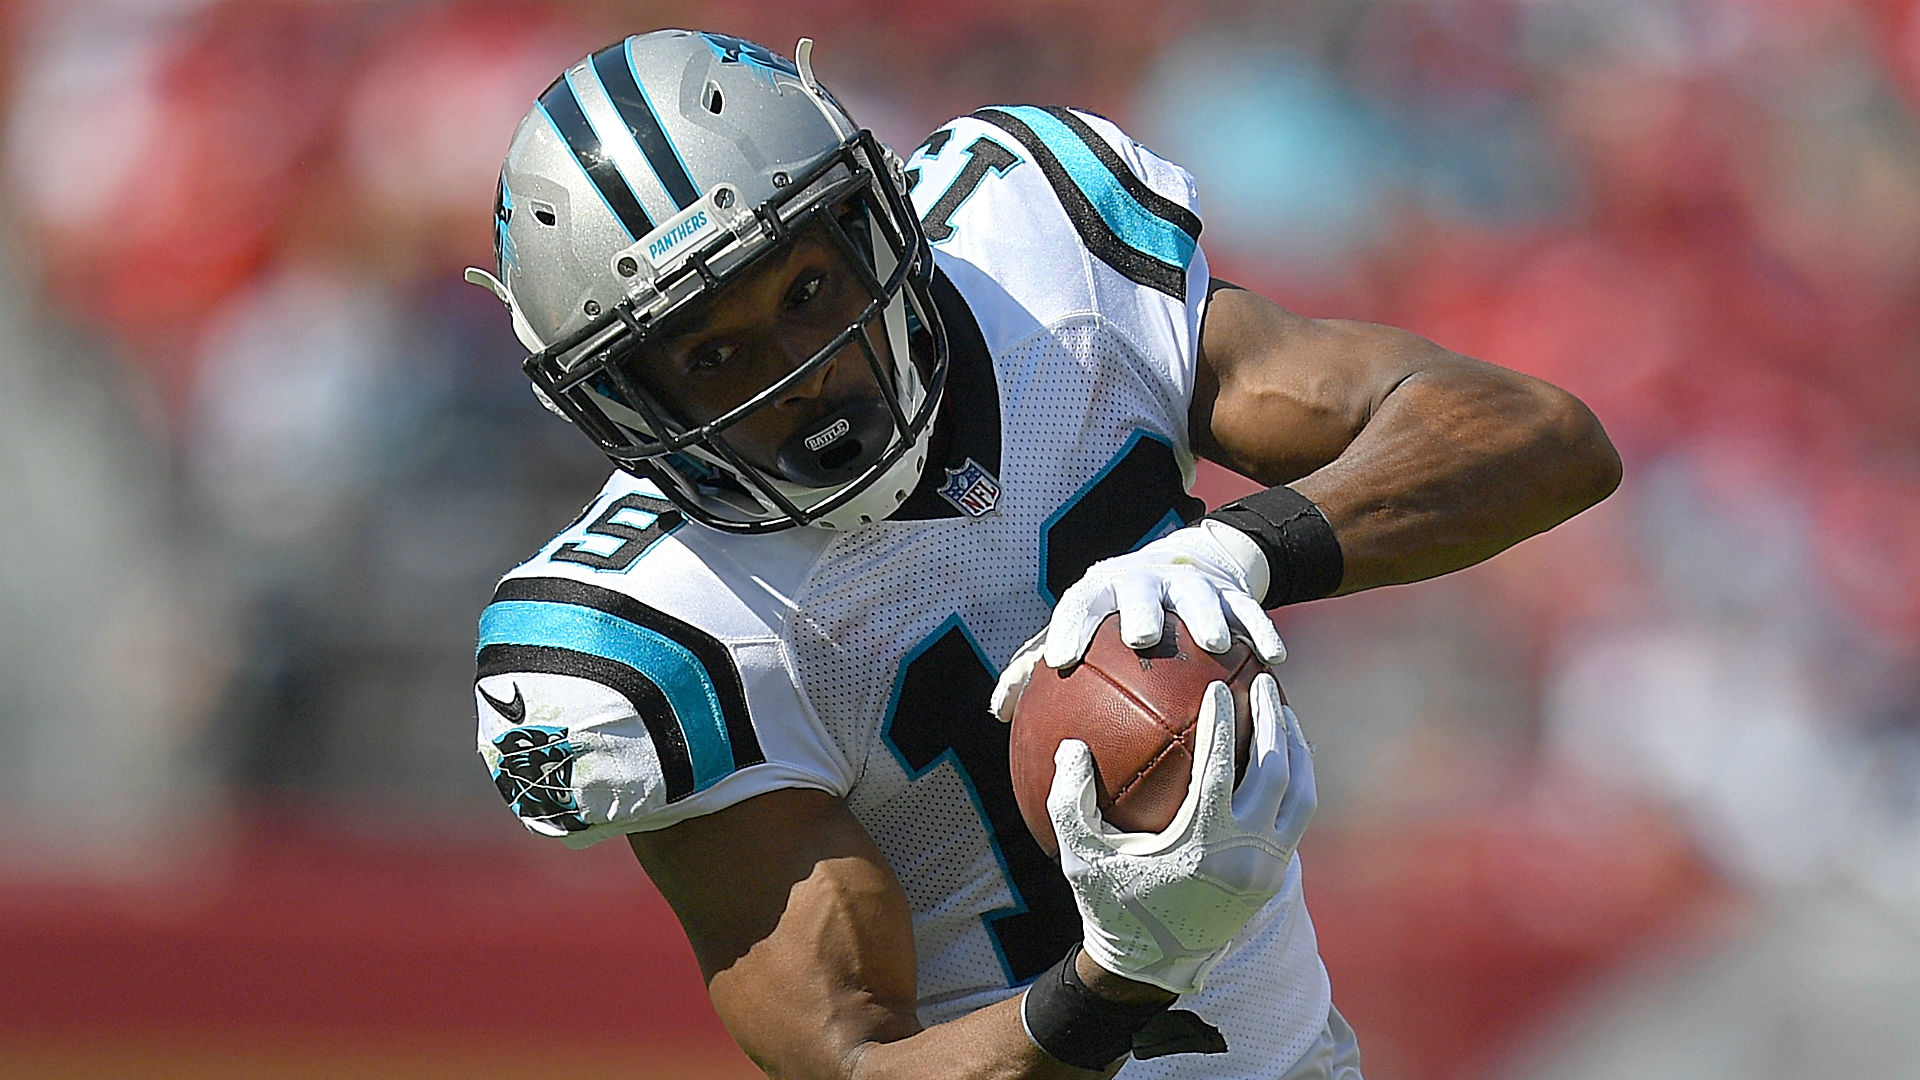 NFL free agency rumors: Wide receiver Russell Shepard says he's signing with Giants